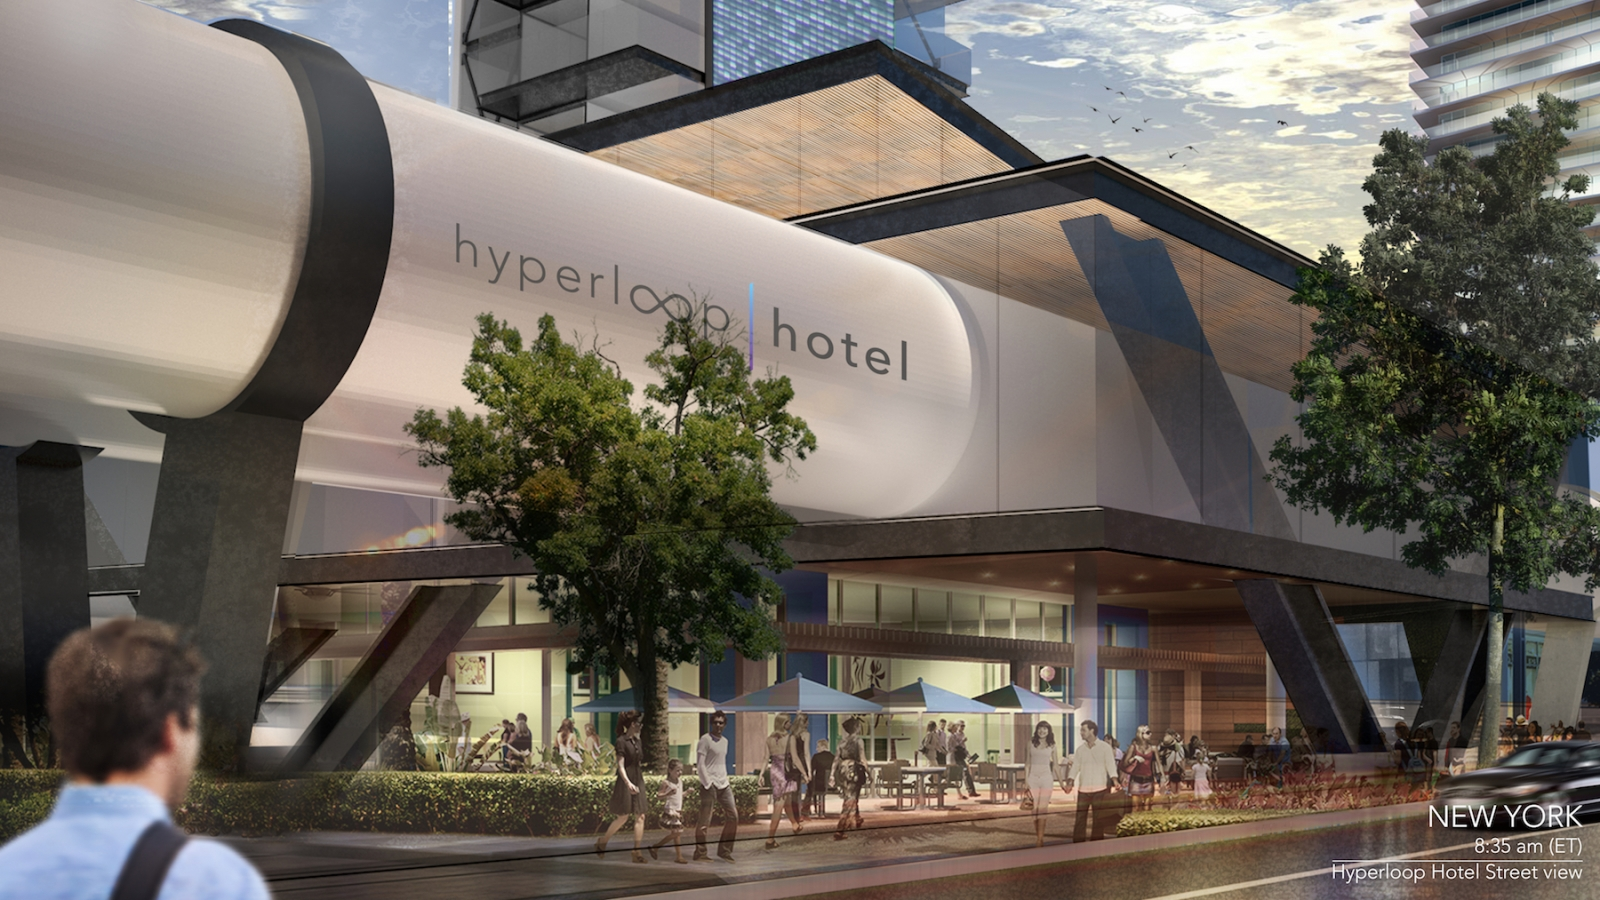 Conceptual image of Hyperloop Hotel